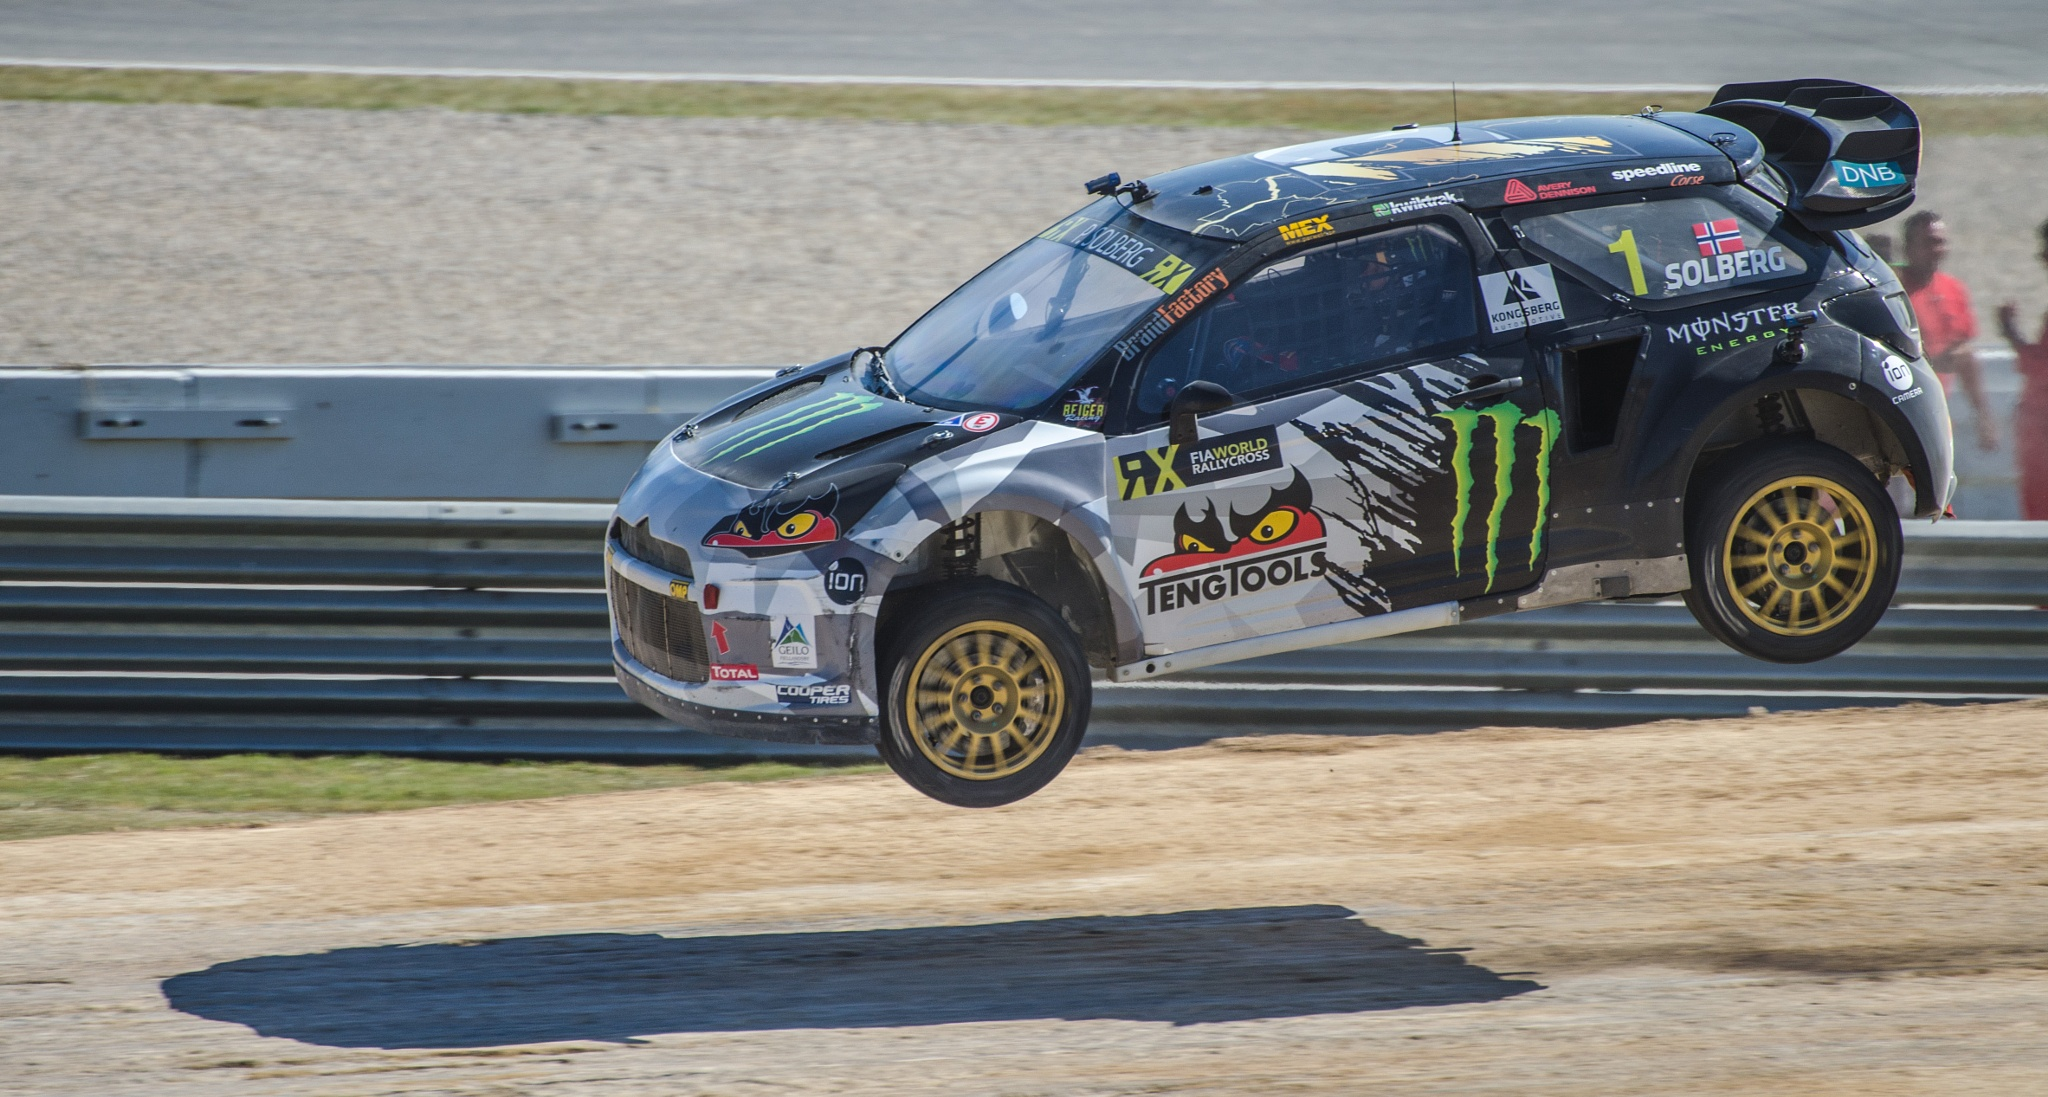 Peter Solberg jump by Josep Zapater